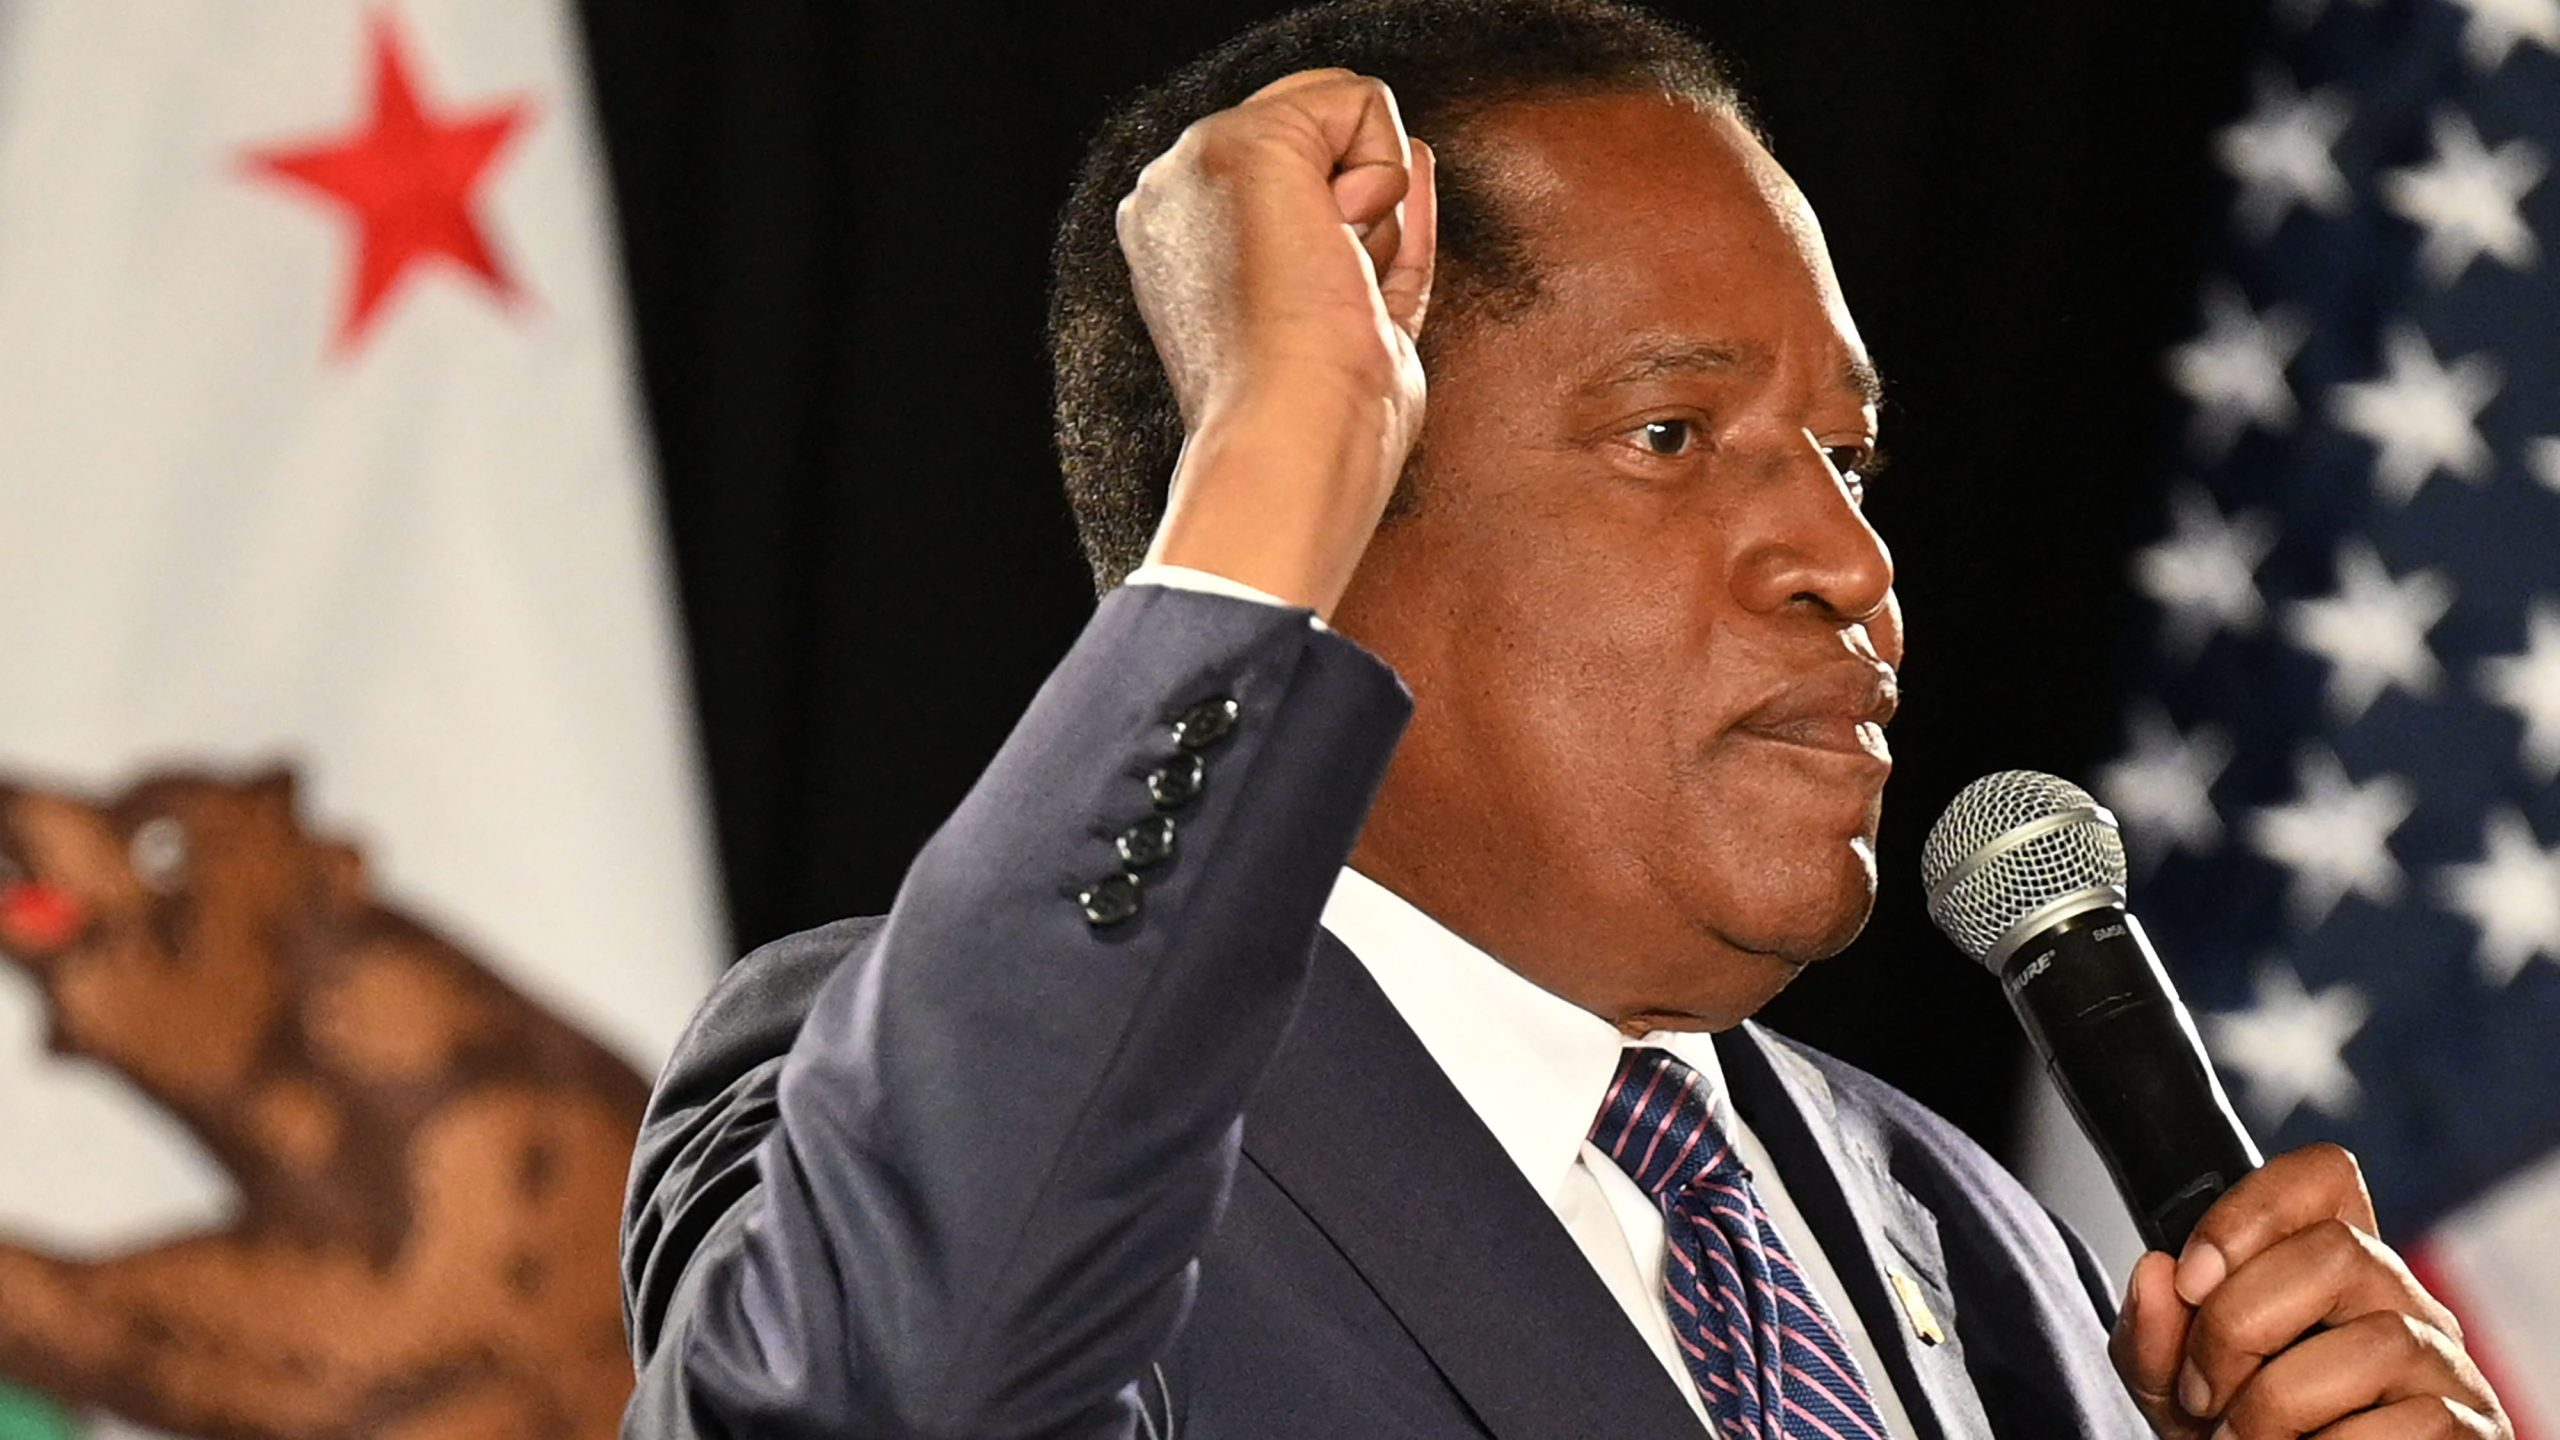 California gubernatorial recall election candidate Larry Elder speaks at his election night party in Costa Mesa on Sept. 14, 2021. (Robyn Beck / AFP / Getty Images)